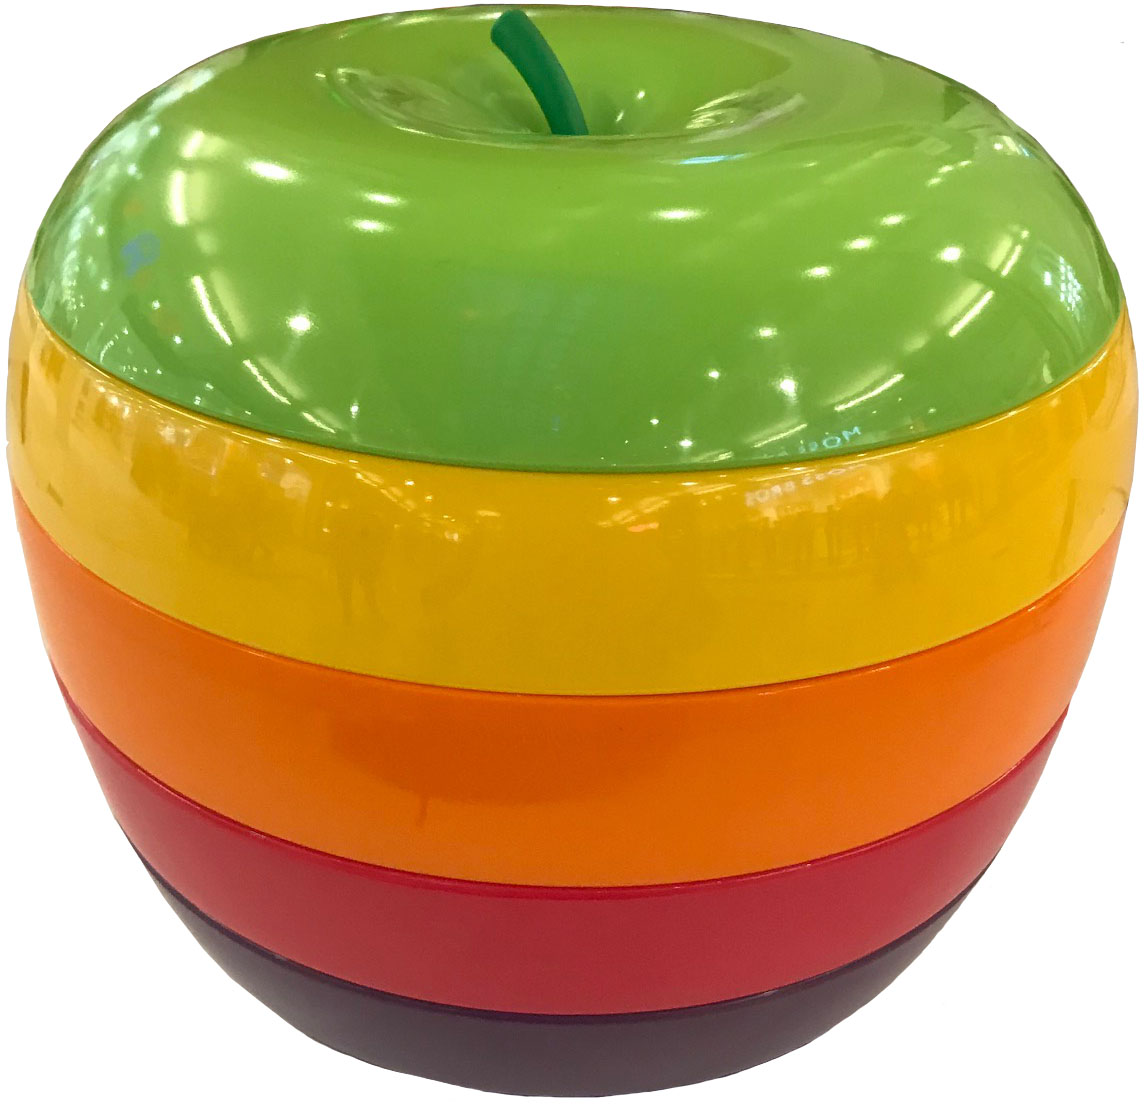 set of coloured melamine dishes forming an apple